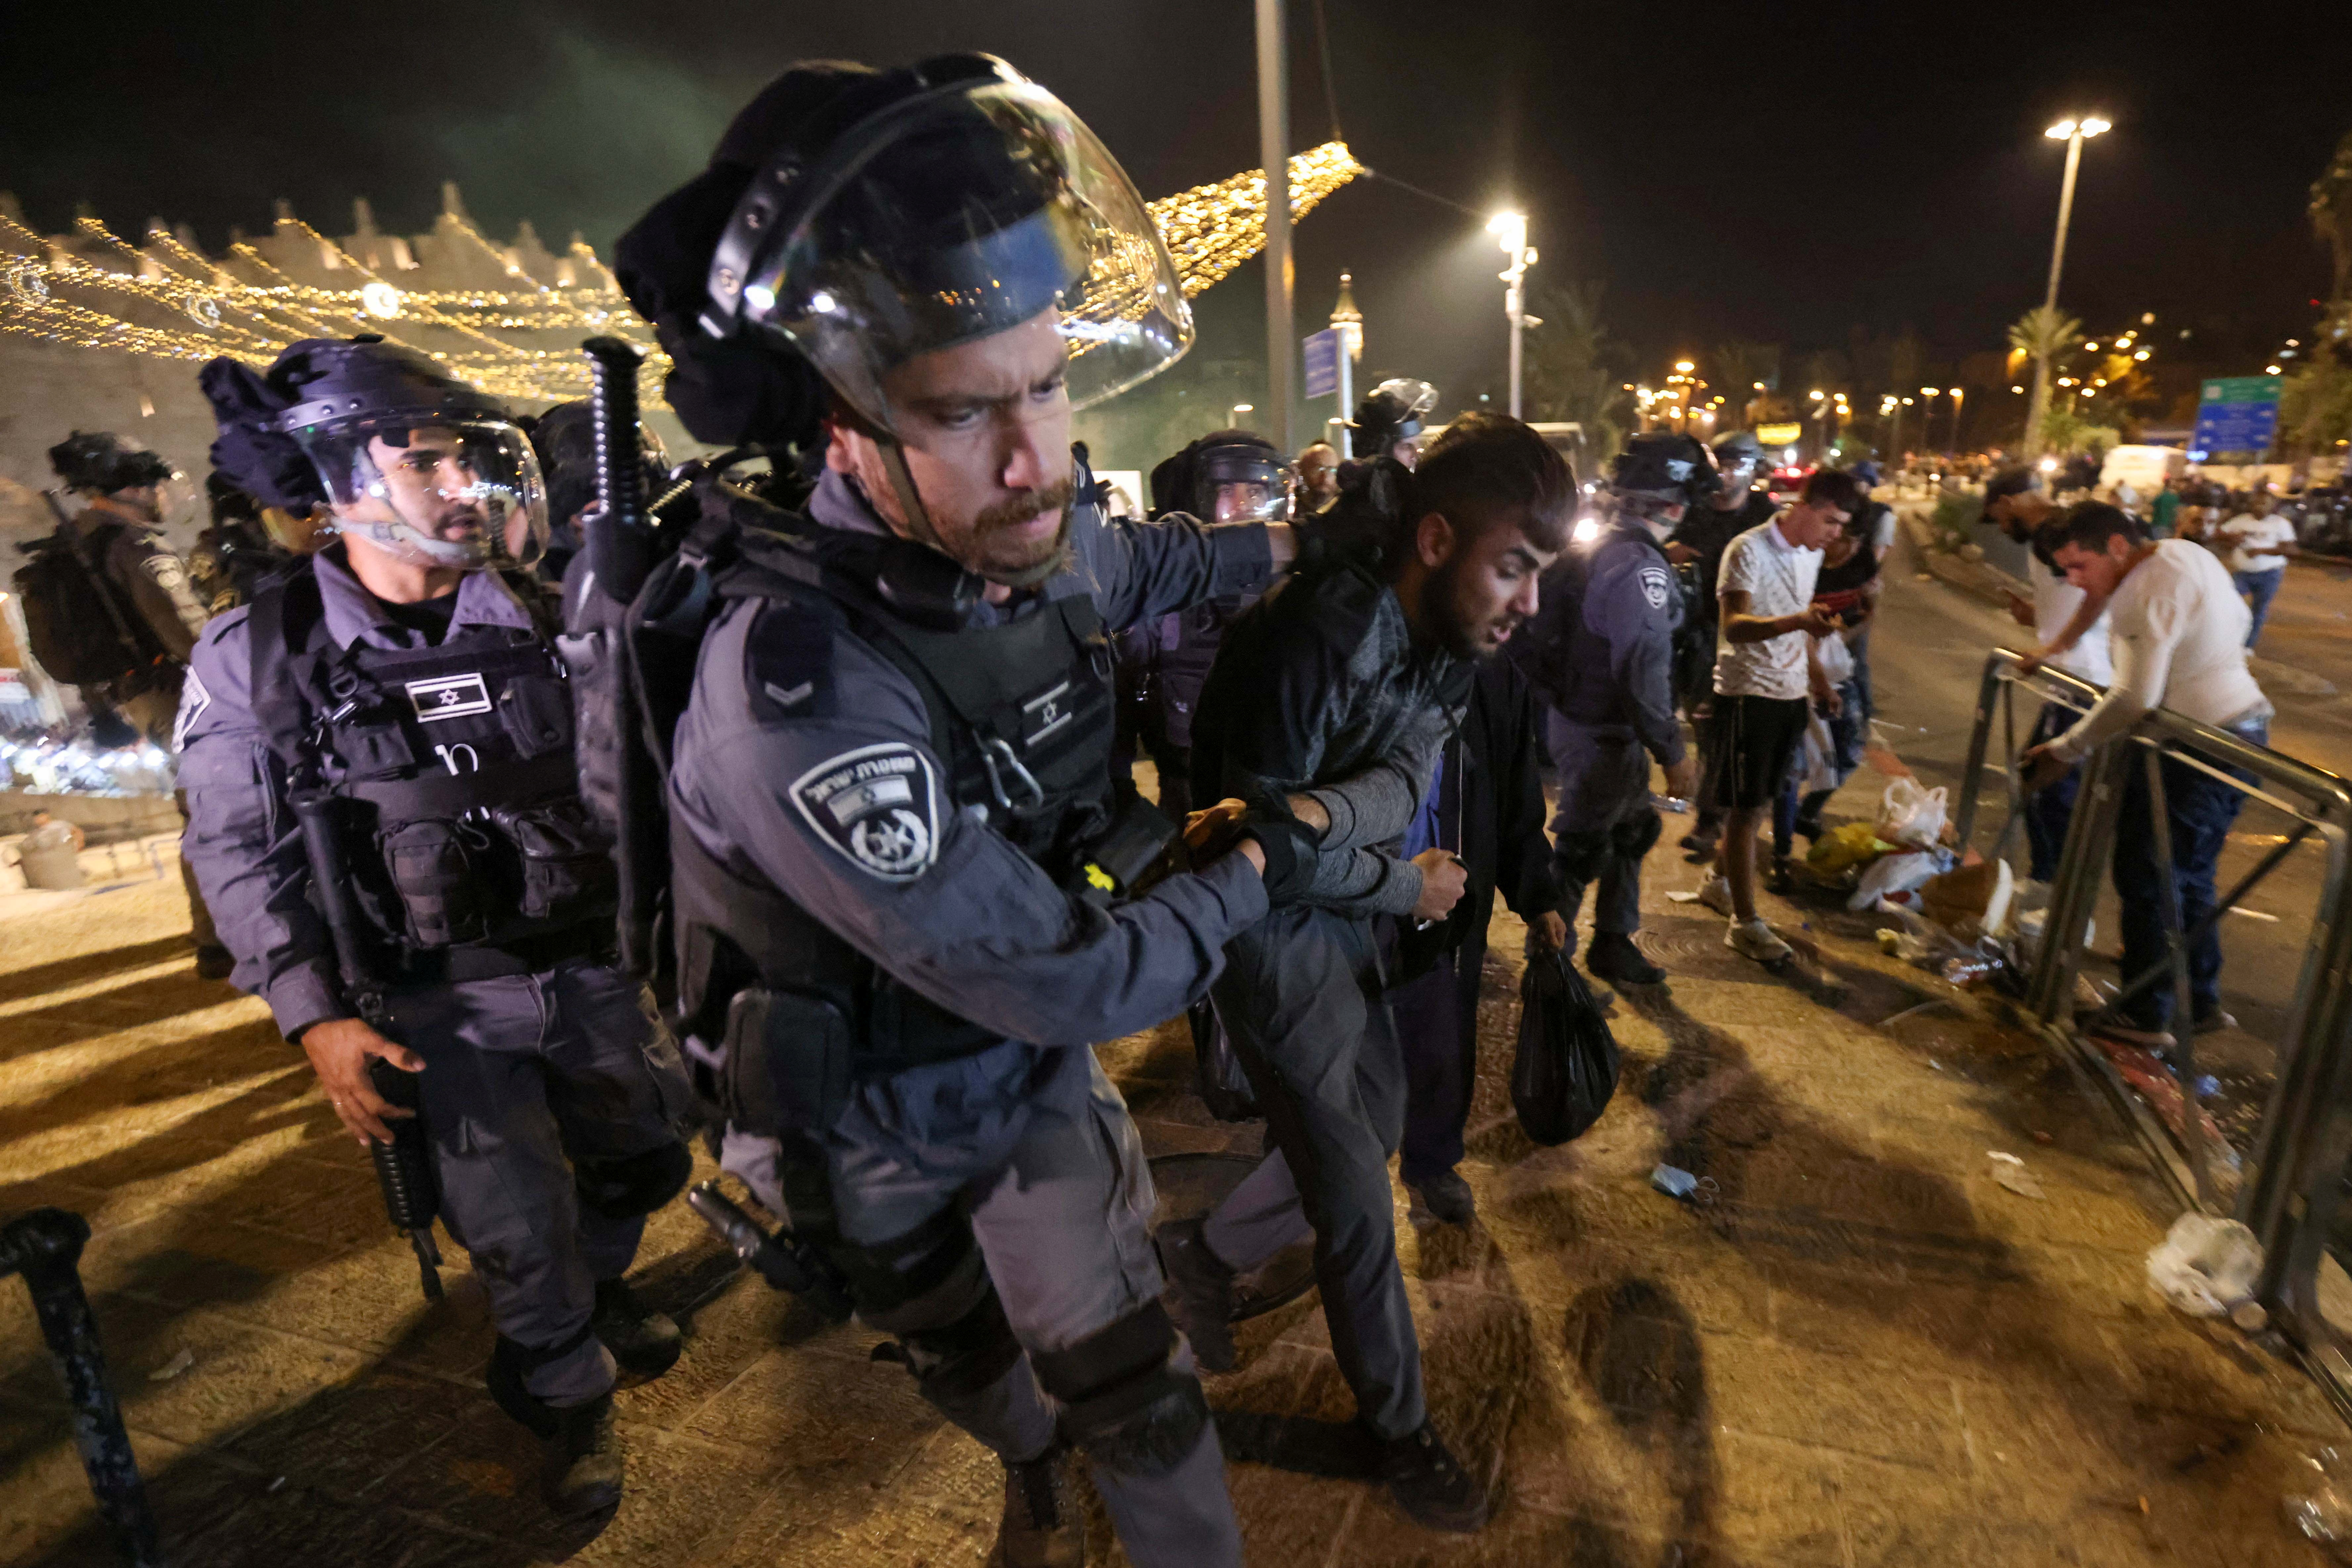 Israeli police detain a Palestinian during clashes at Damascus Gate on Laylat al-Qadr during the holy month of Ramadan, in Jerusalem's Old City, May 8, 2021. REUTERS/Ronen Zvulun